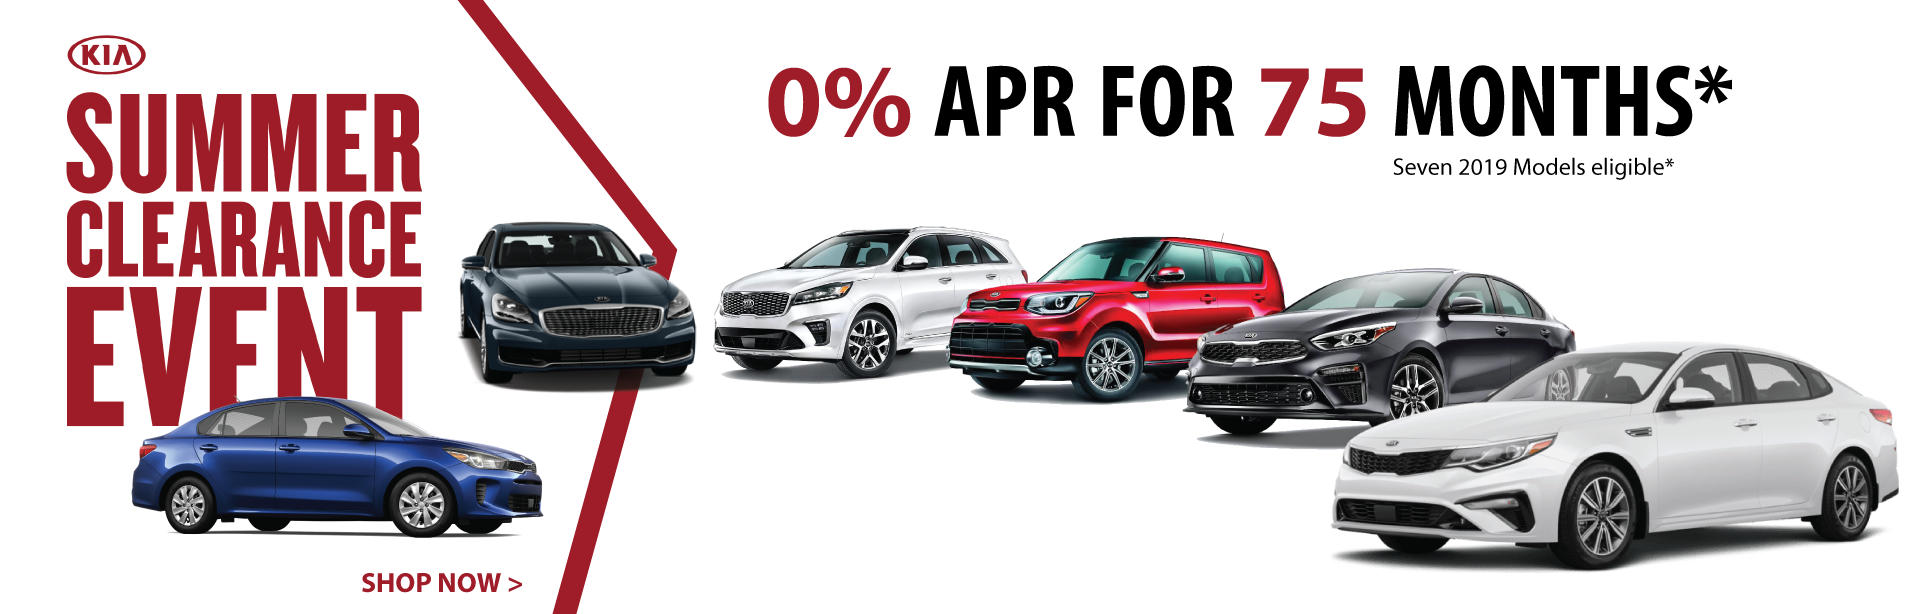 Shawnee Mission Kia Local Kia Car Dealership Serving Kansas City